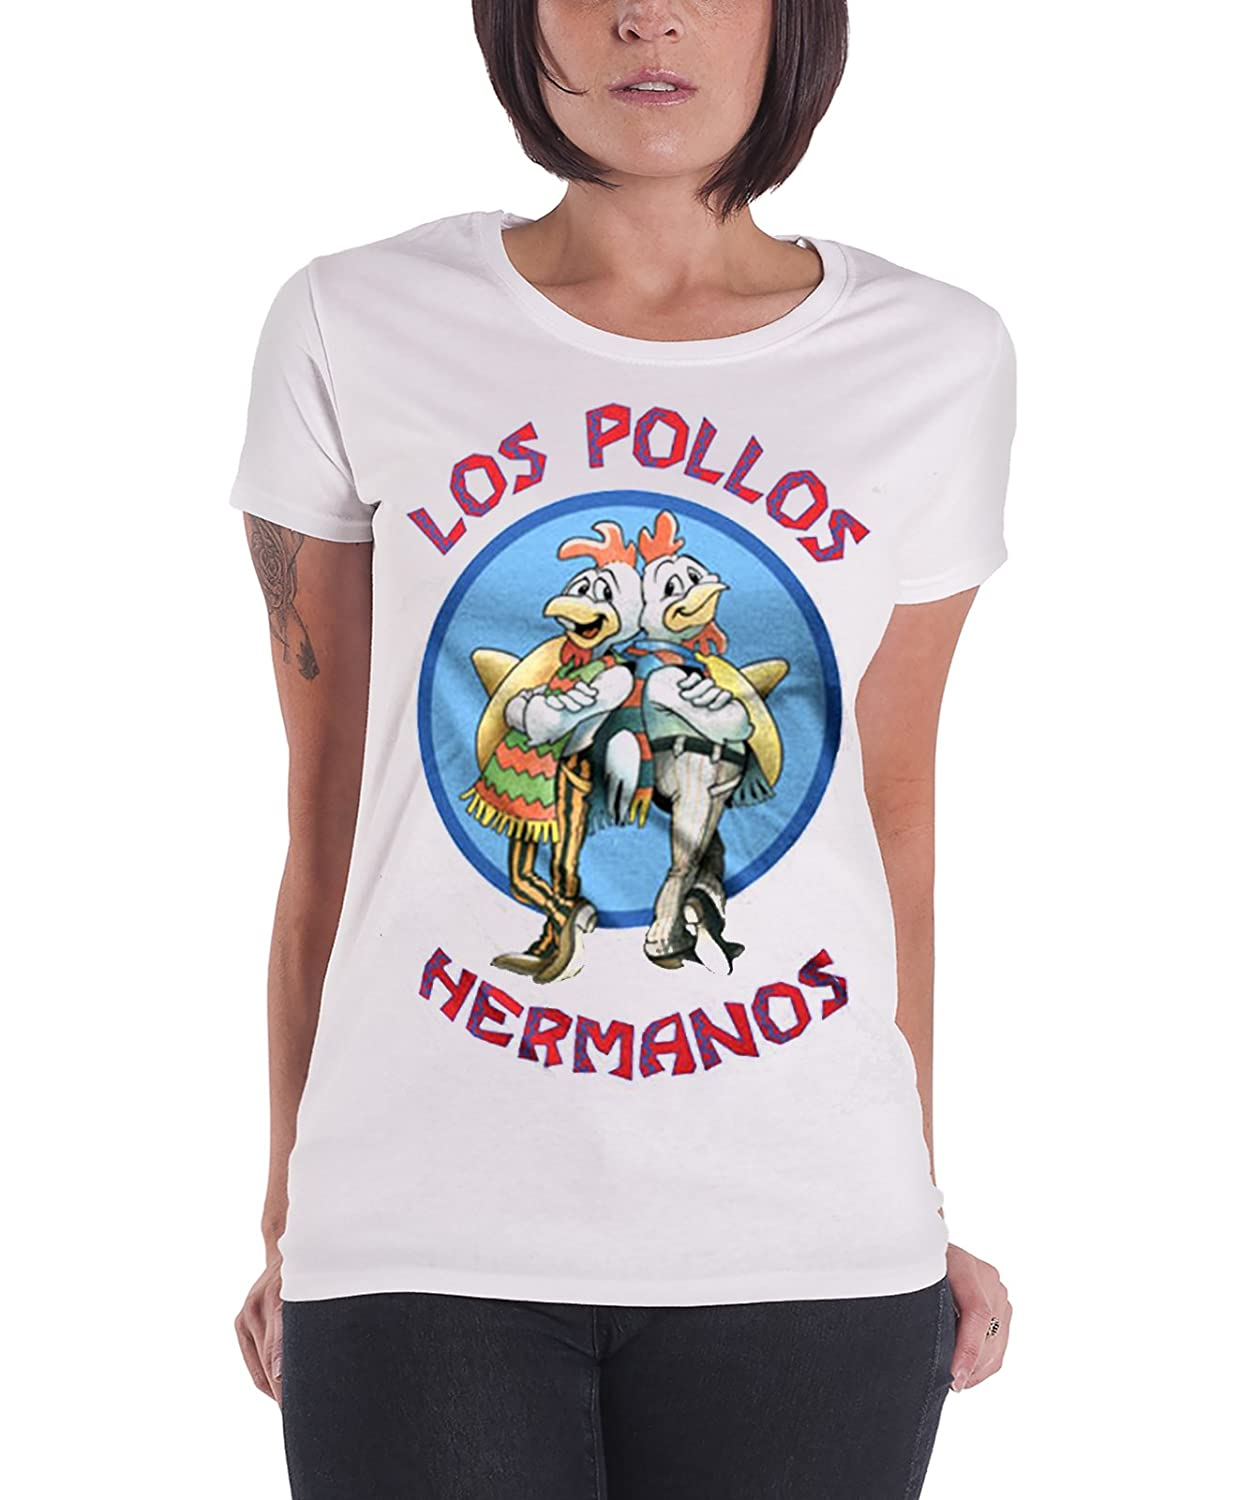 Officially Licensed Merchandise Los Pollos Hermanos Girly T-Shirt